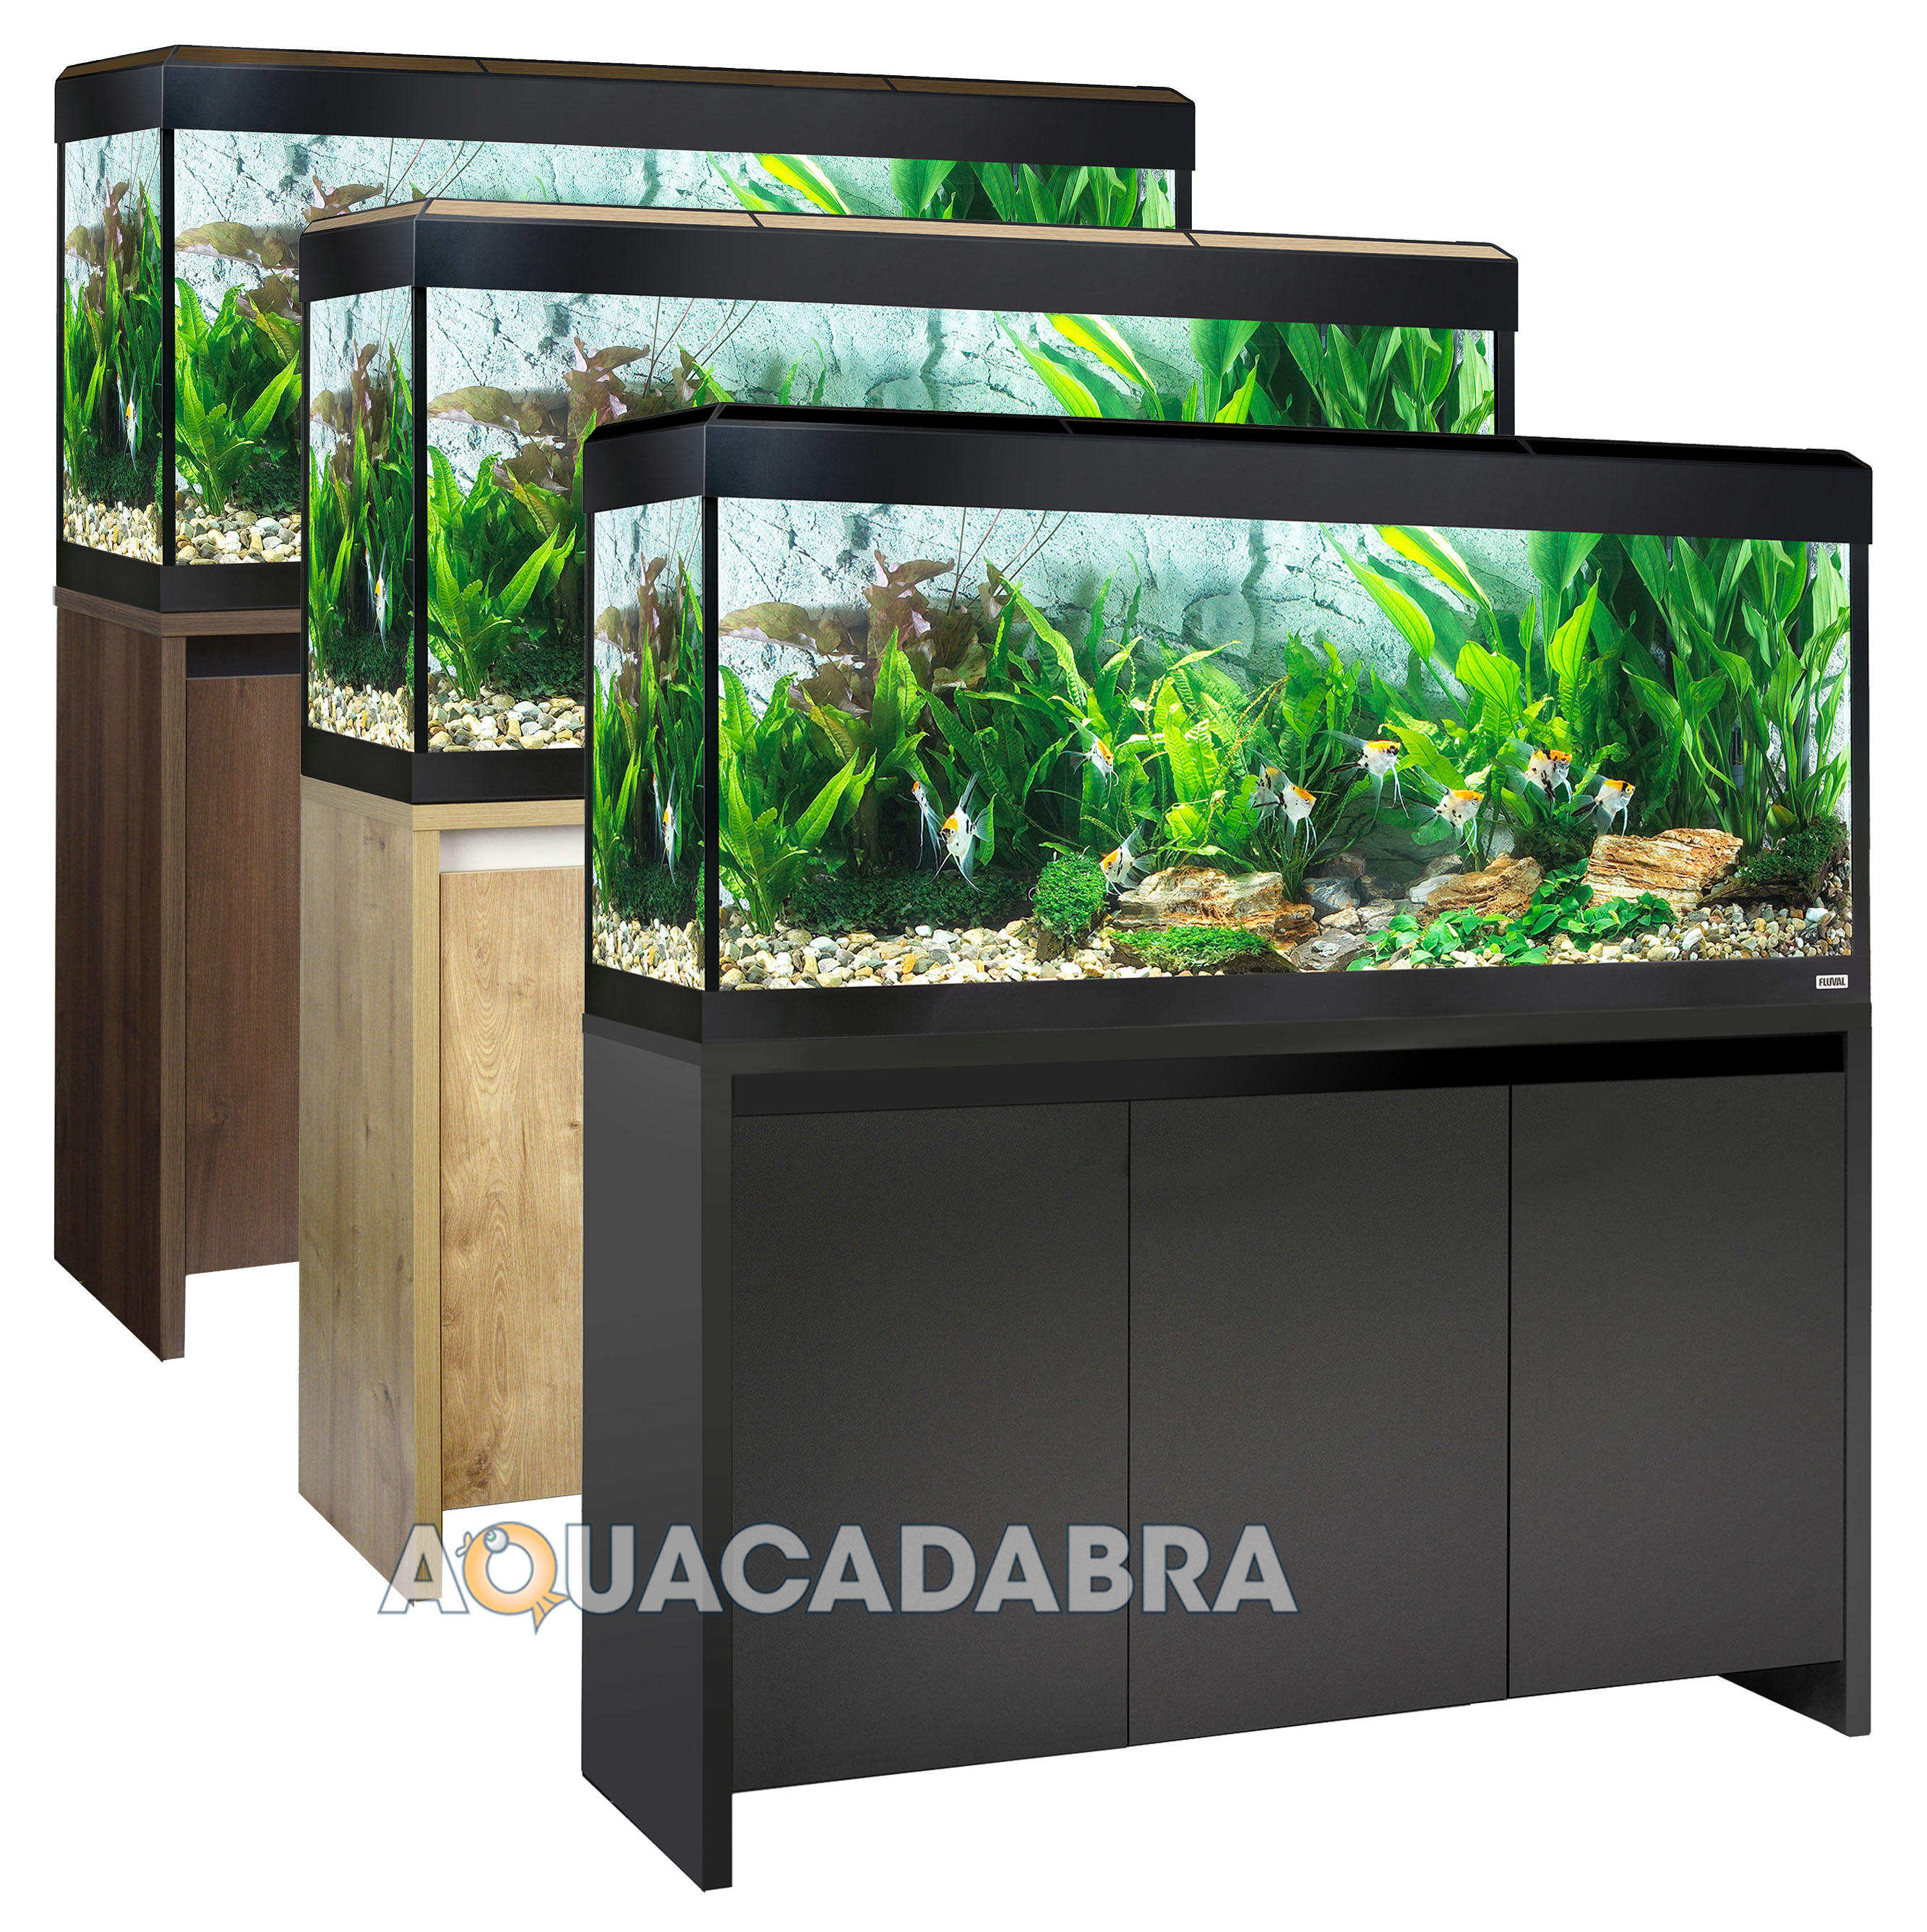 FLUVAL ROMA LED AQUARIUMS 90 125 200 240L OAK WALNUT BLACK NEW CABINET FISH TANK | eBay